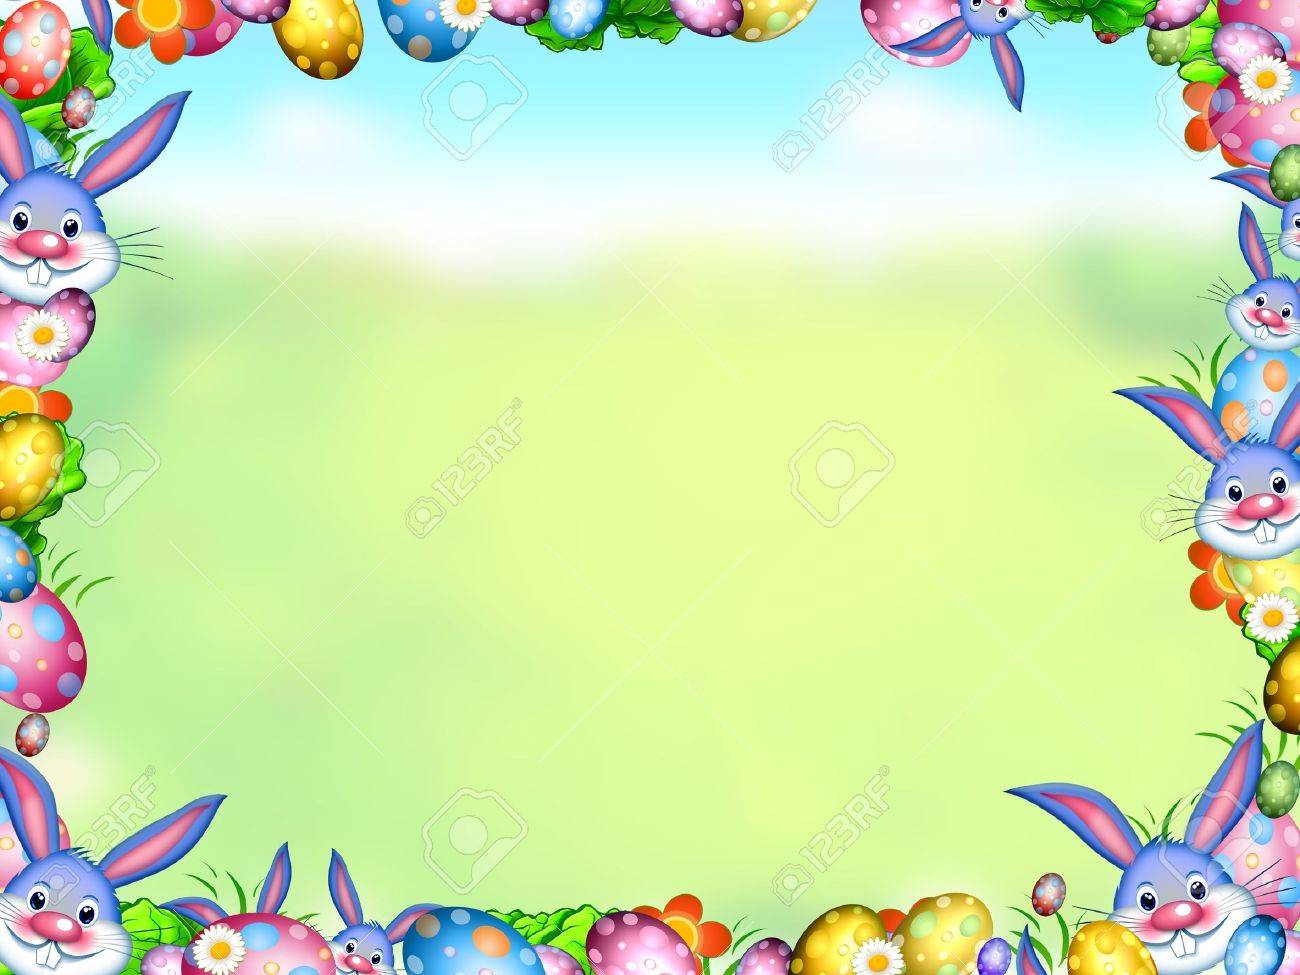 easter bunnies with eggs and flowers frame background stock photo